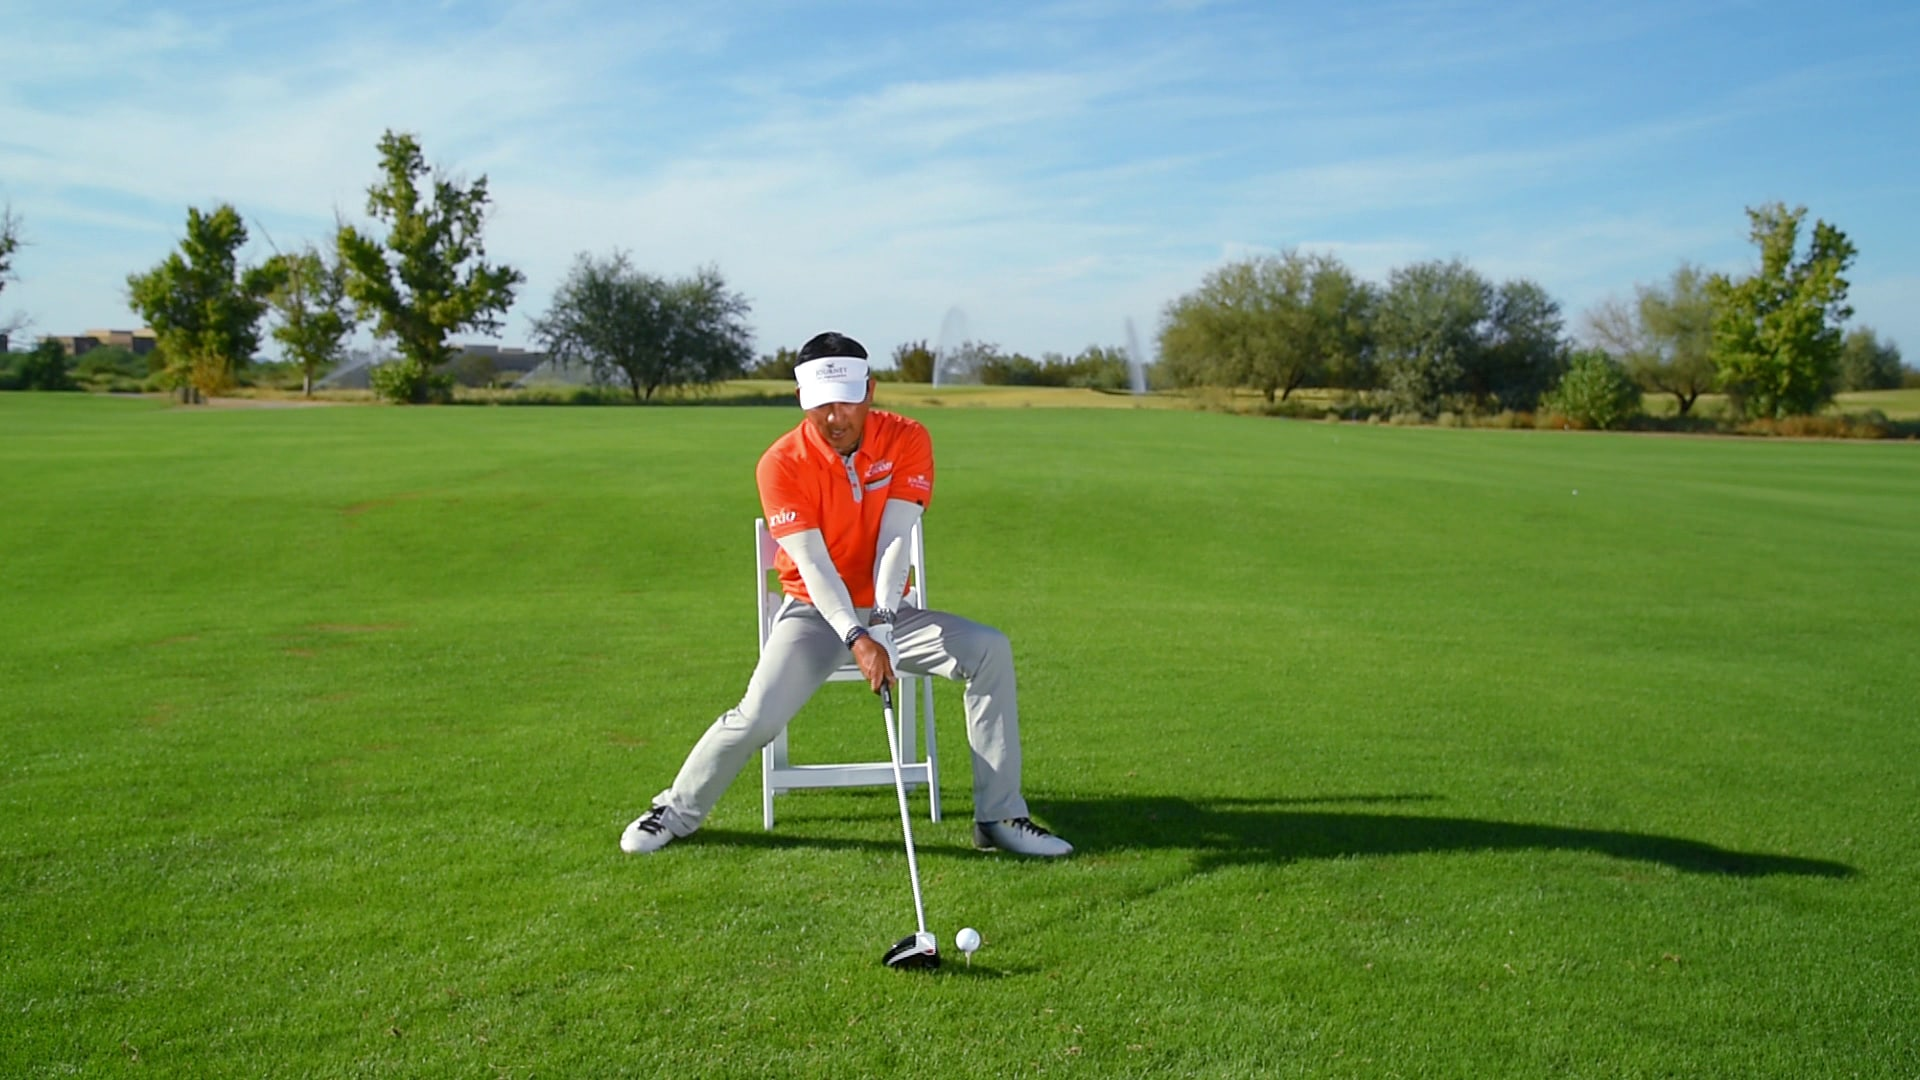 Chang: Increase Club Head Speed With Chair DrillFeb 21, 2017